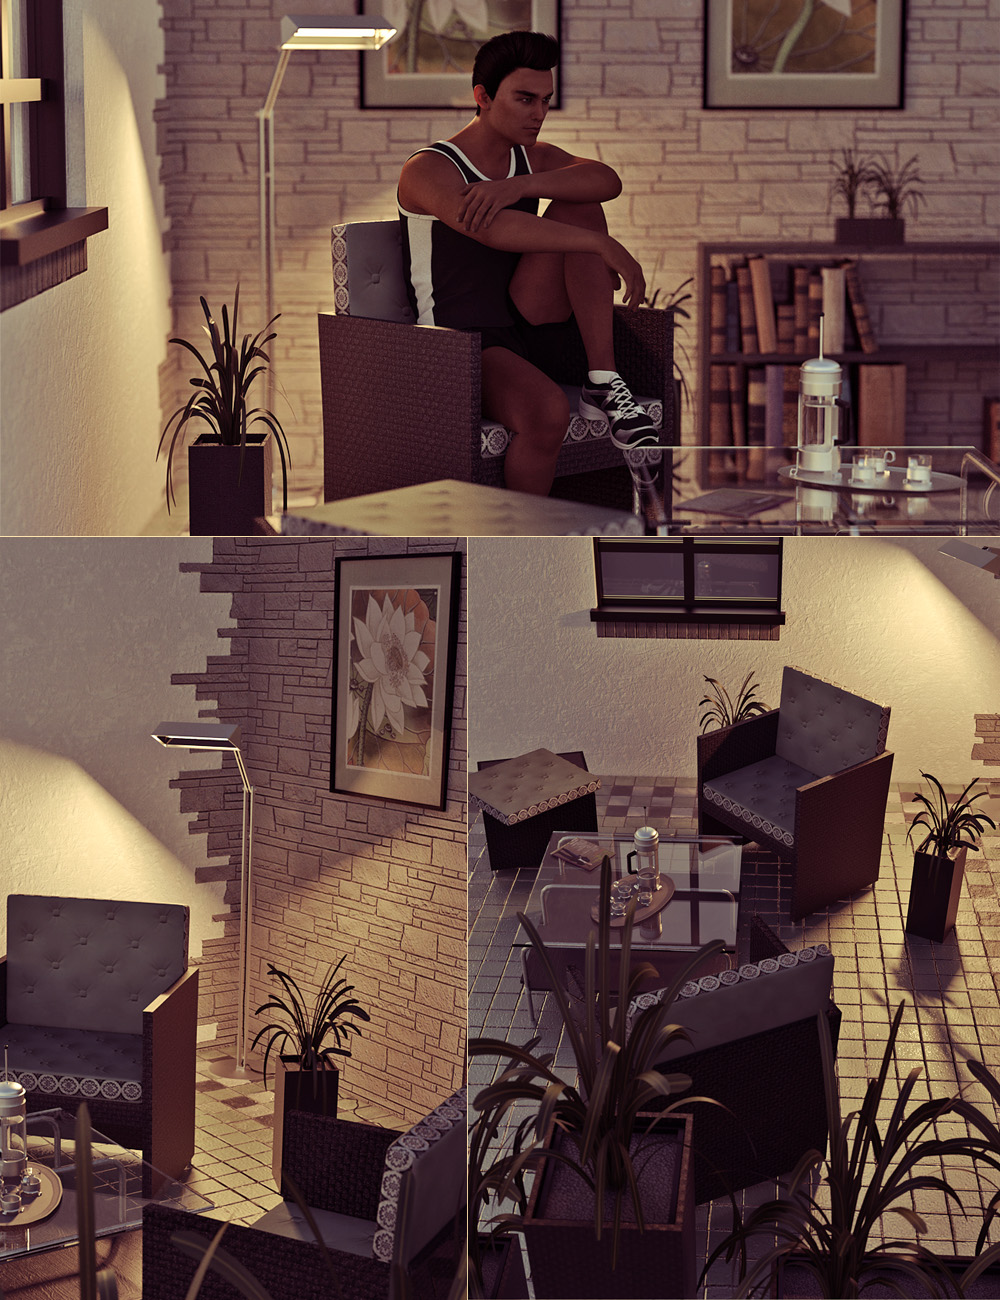 Mini Haven Interior Vignette by: 3ansonForbiddenWhispers, 3D Models by Daz 3D